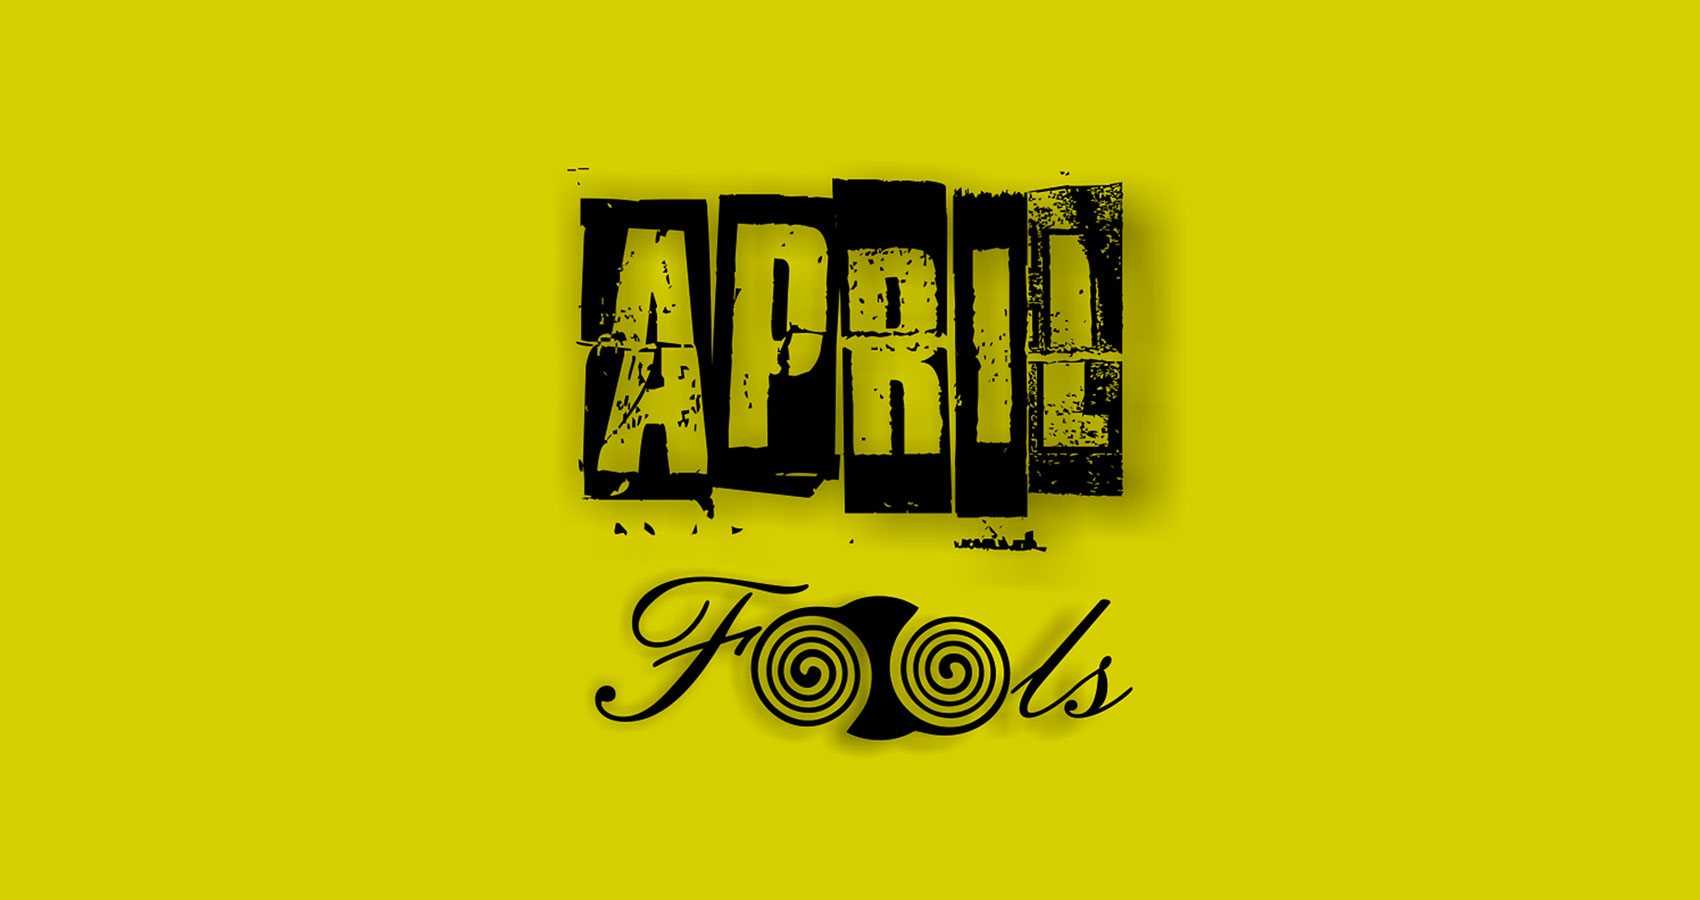 April First Fool, micropoetry written by Anne G at Spillwords.com